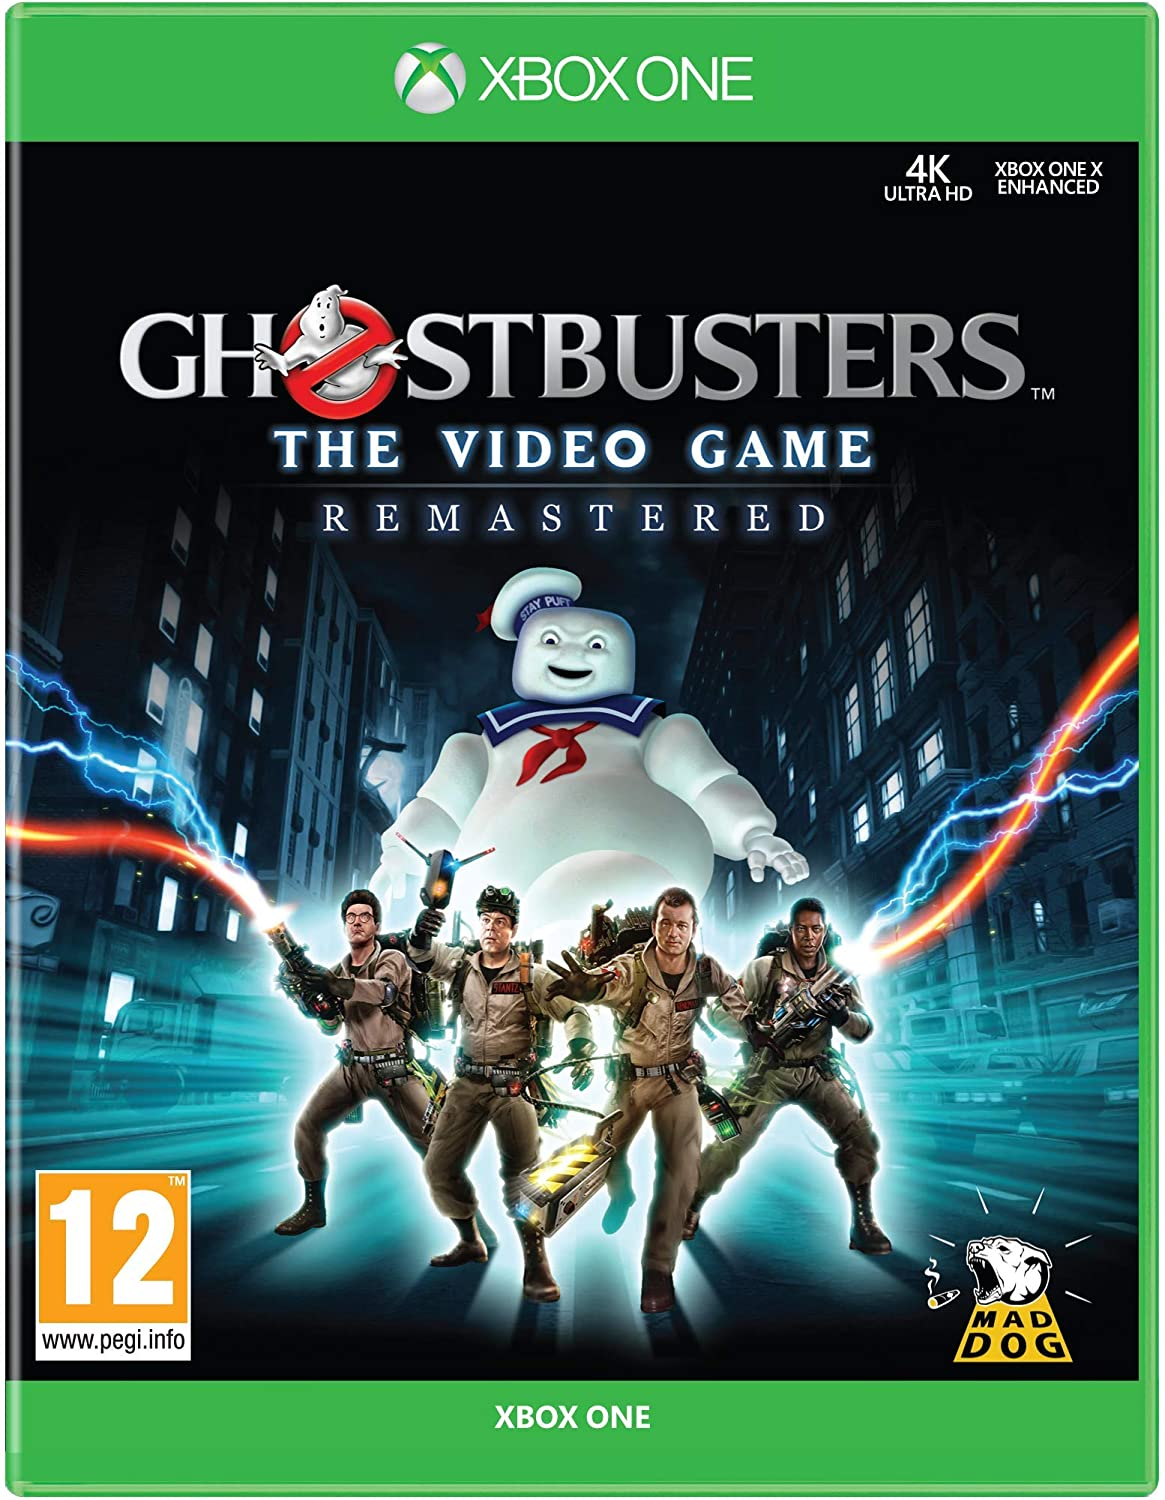 Ghostbusters - The Videogame Remastered - Xbox One: Amazon.es ...